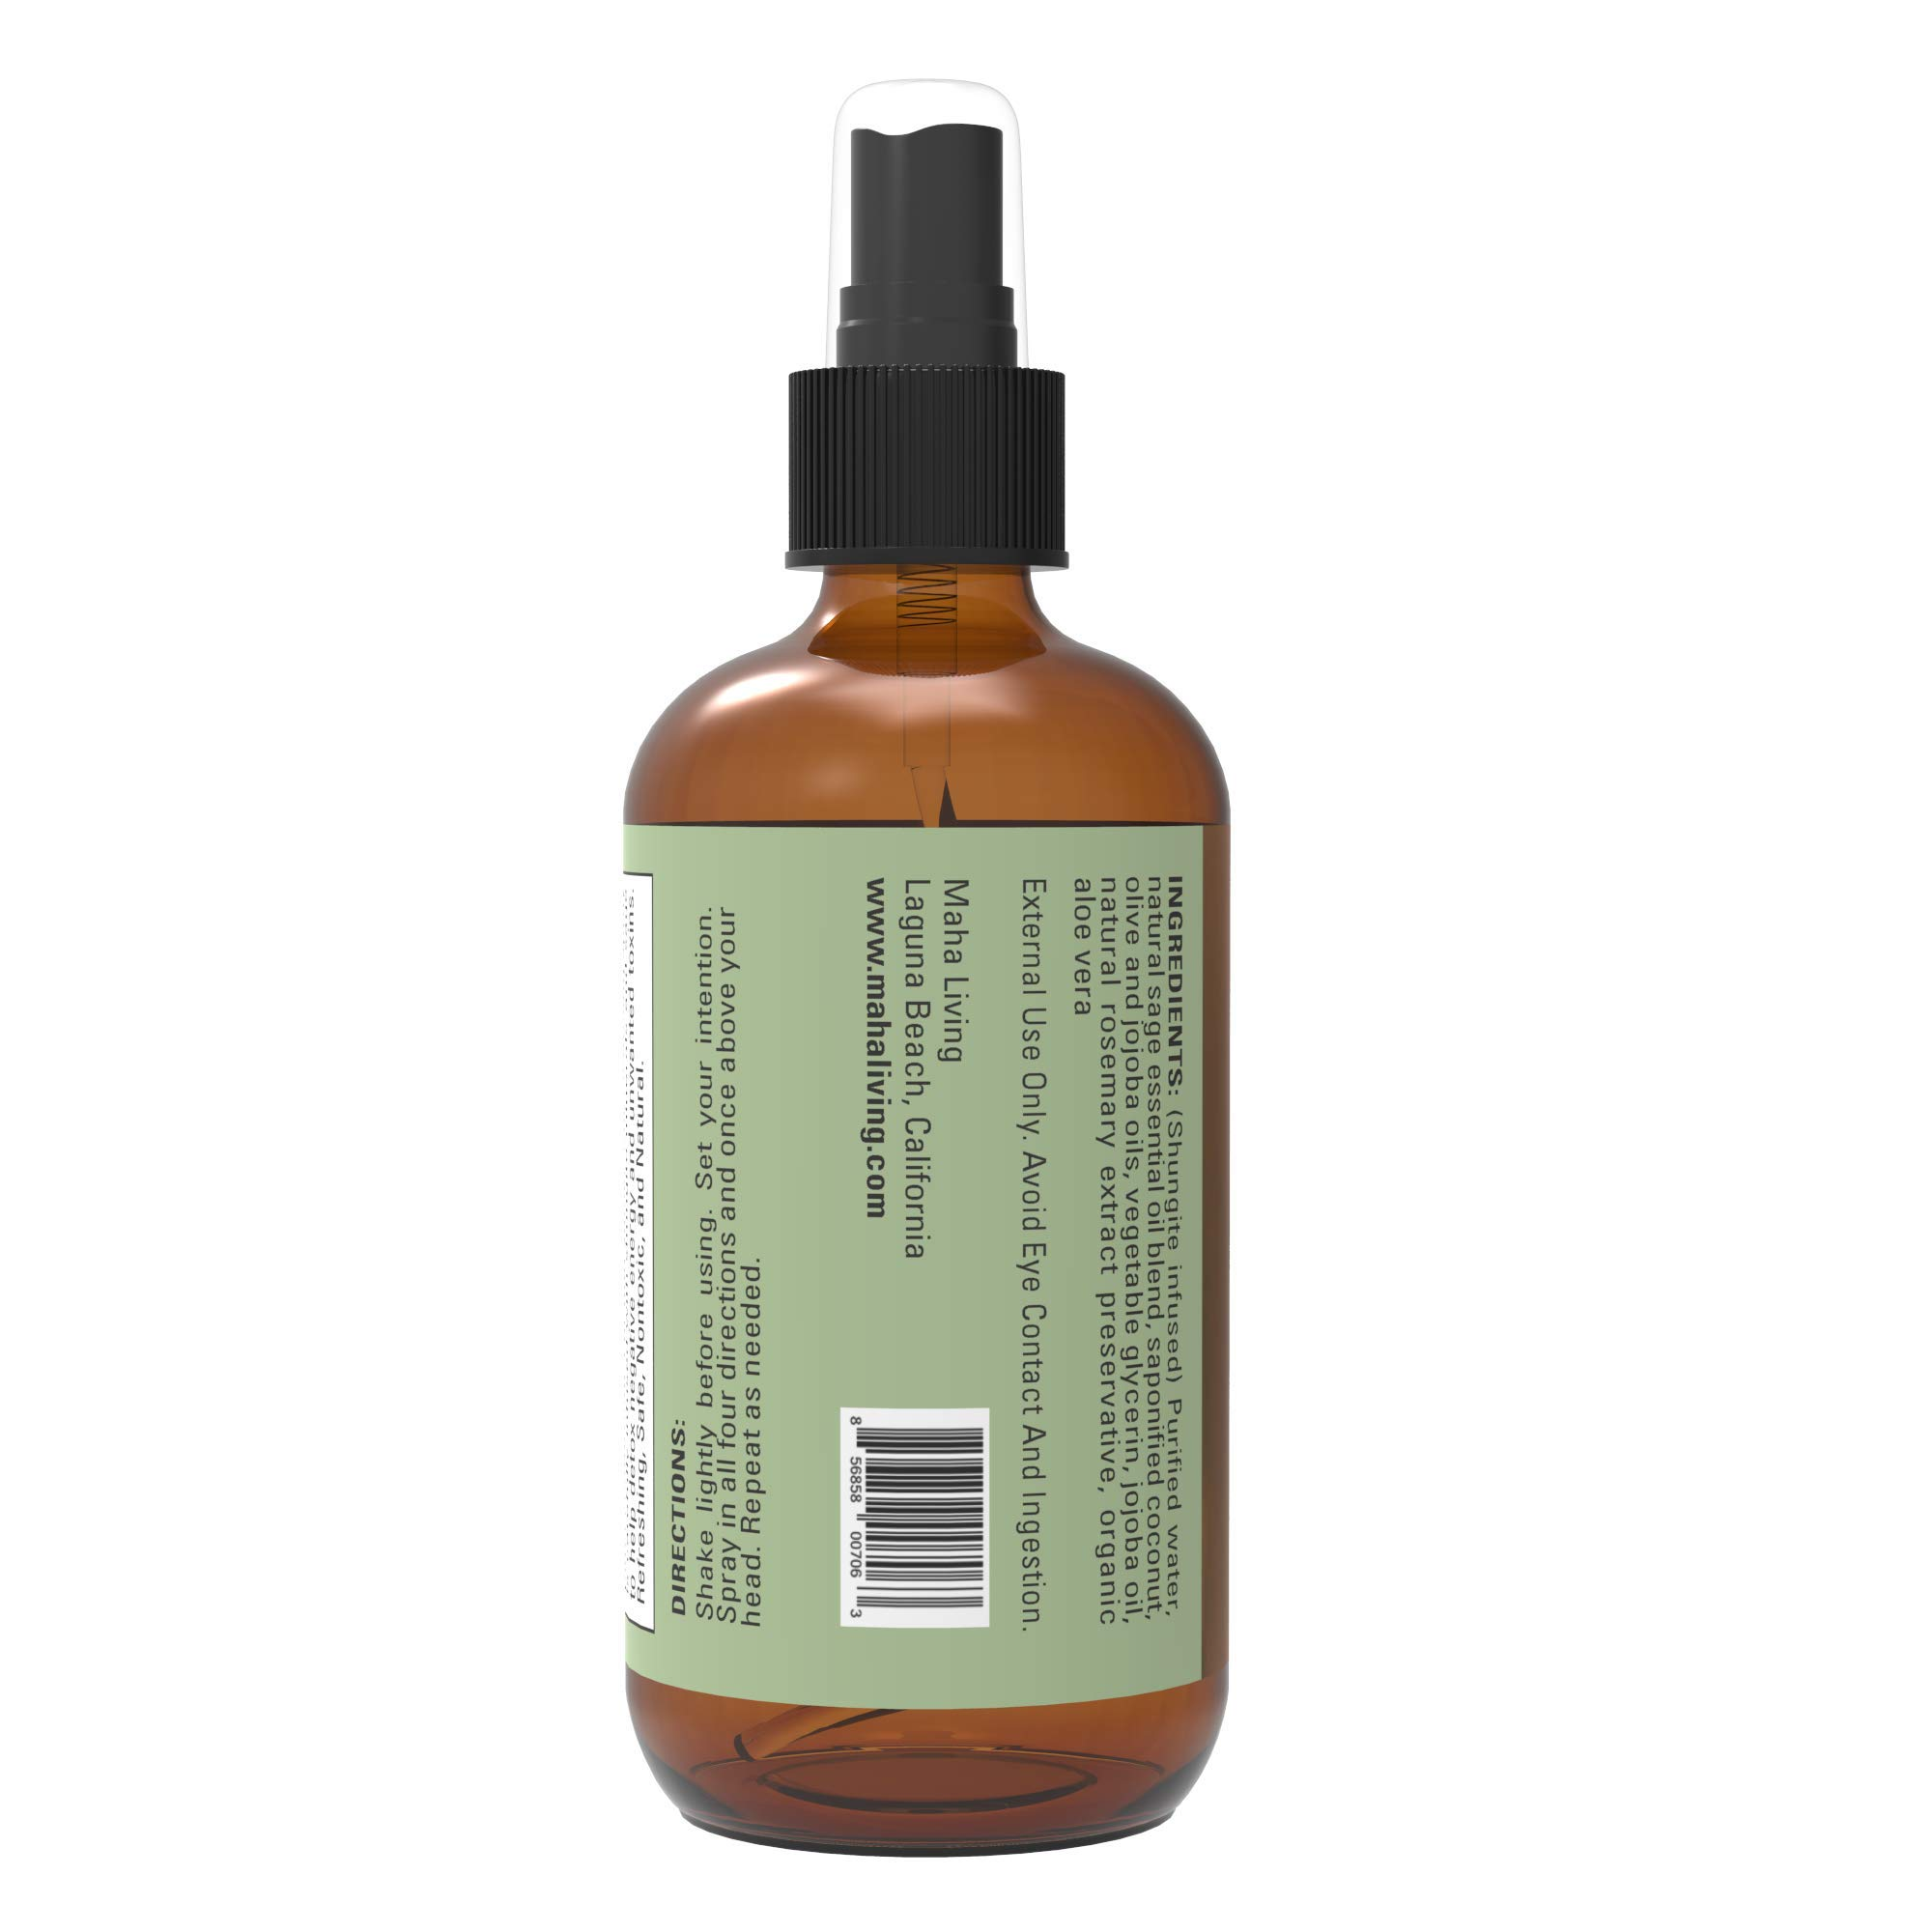 Sage Spray - Natural Essential Oil Spray for Cleansing Your Home, Office, or Linens - Crystal Infused to Help Purify And Restore - Perfect as an Air Freshener, Pillow Spray, or Aromatic Mist (4 oz) by Maha Living (Image #2)